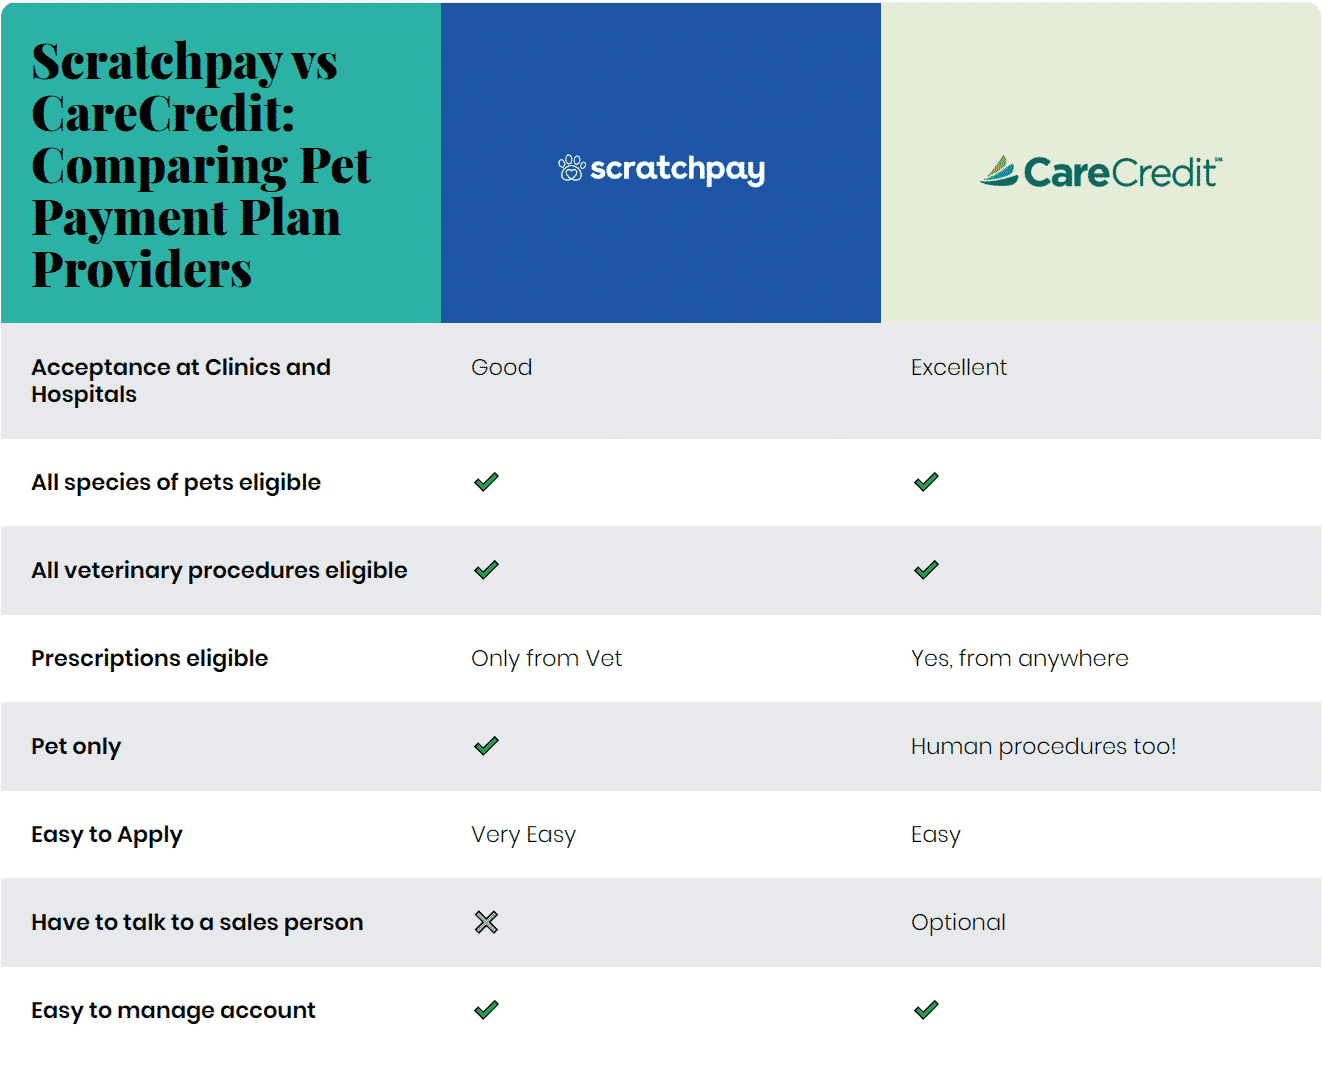 Scratchpay vs CareCredit: Best Pet Payment Plan Comparison